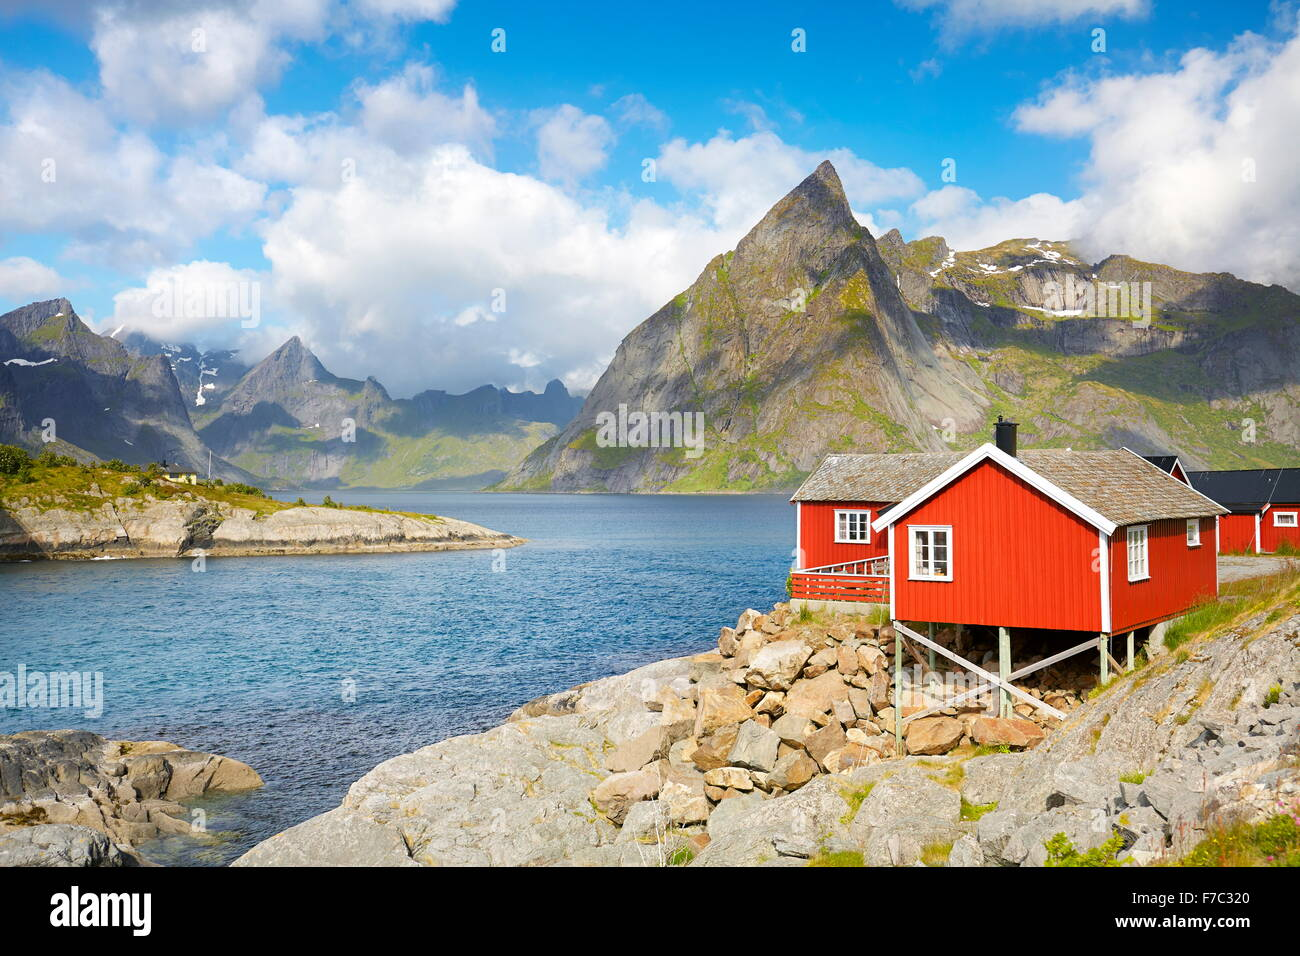 Traditional red fishermen house rorbu, Lofoten Islands, Norway - Stock Image